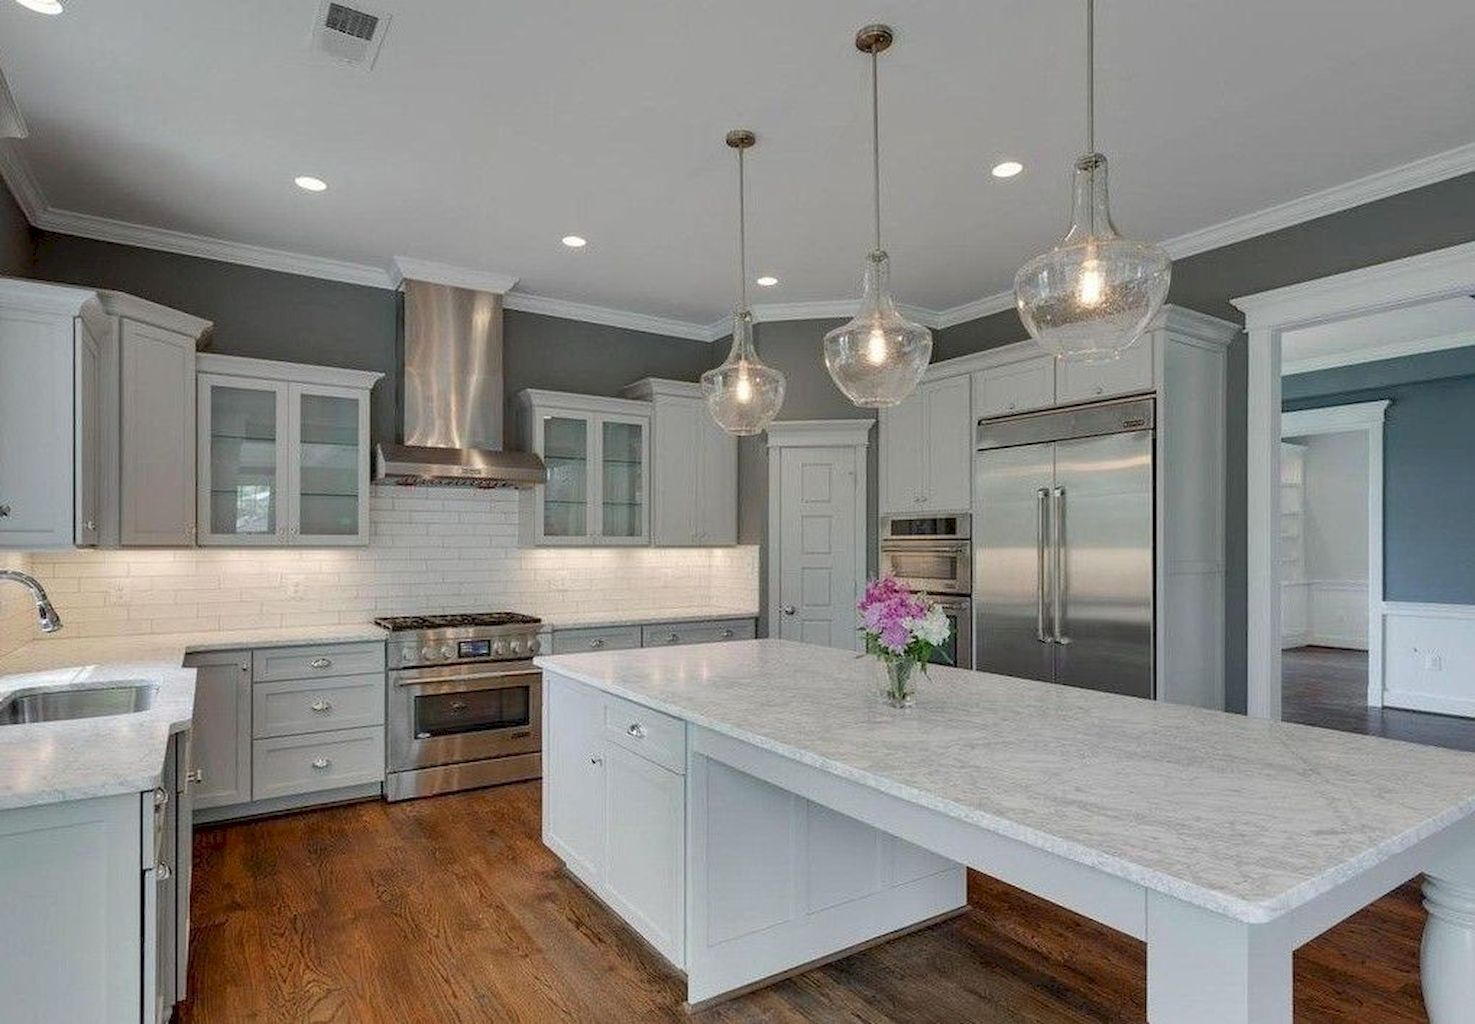 Stunning Small Island Kitchen Table Ideas Home To Z Kitchen Island With Seating Narrow Kitchen Island Kitchen Island Table